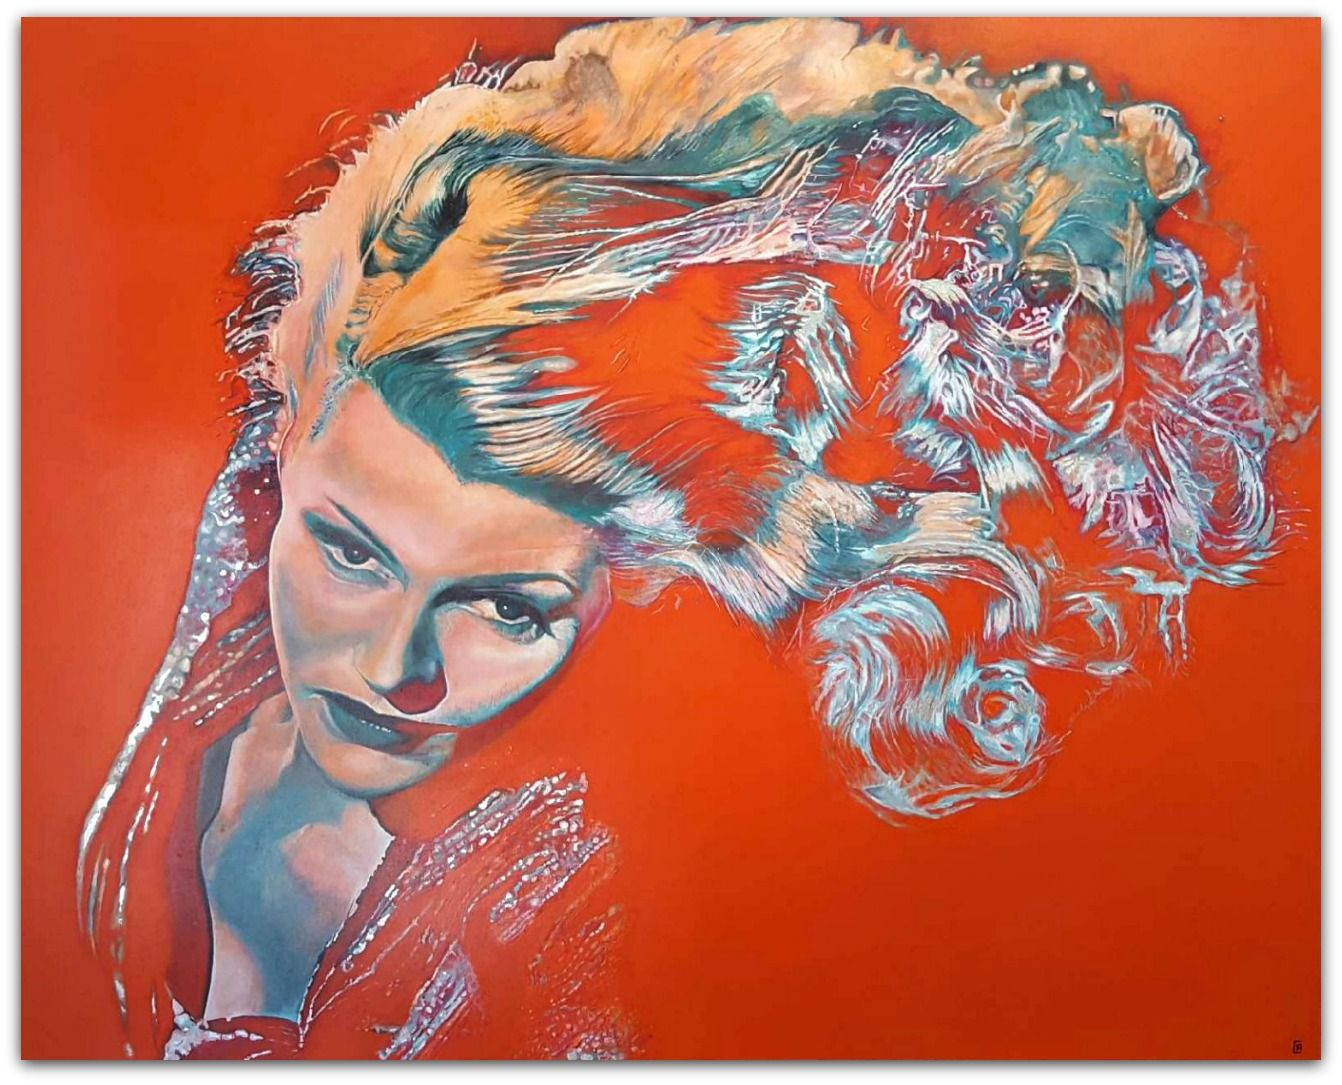 Andrew Causon Painting ~ 'The Toss' (Rita Hayworth) - Gallery Salamanca Hobart Tasmania